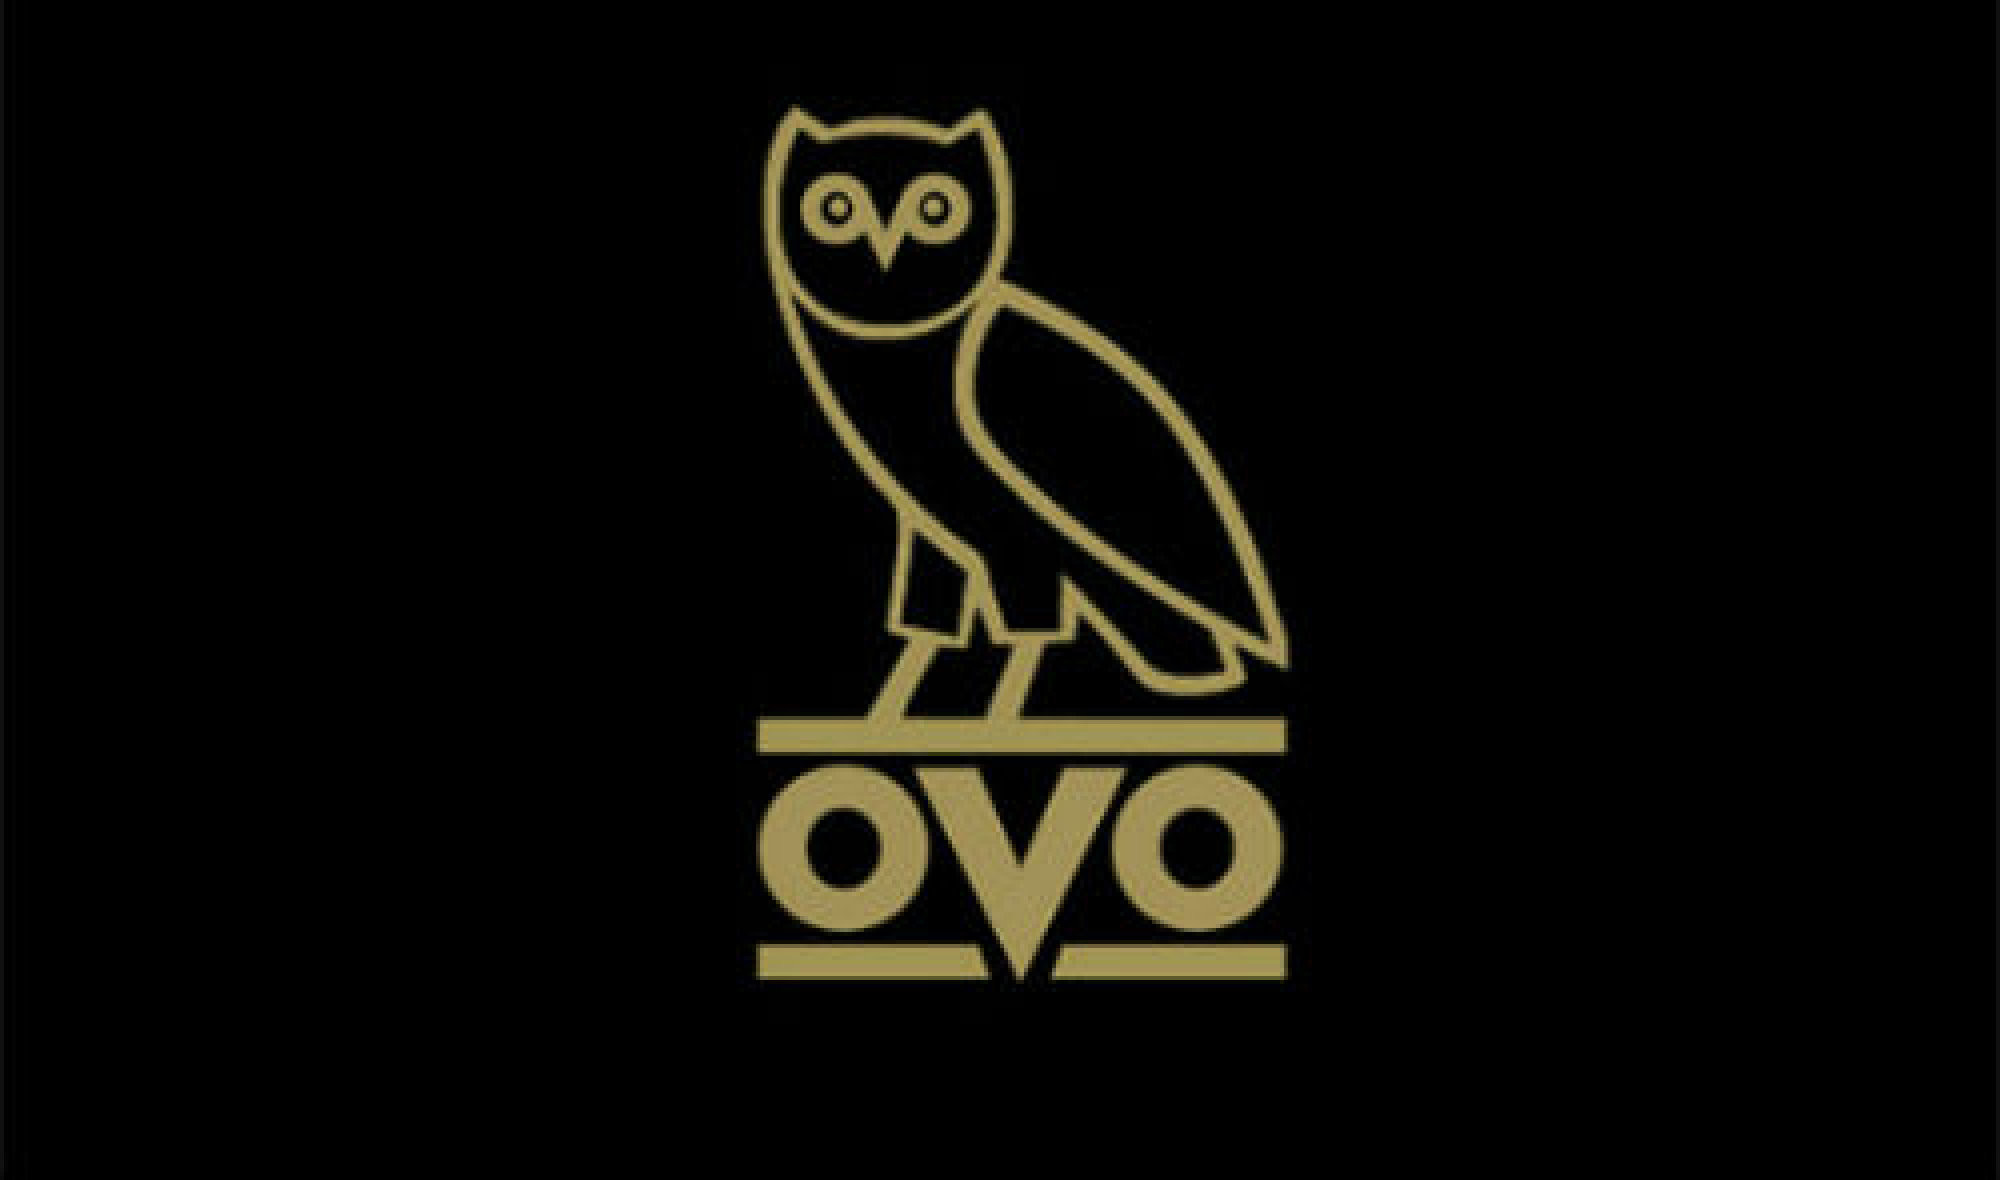 71 Ovo Wallpaper Iphone Hd